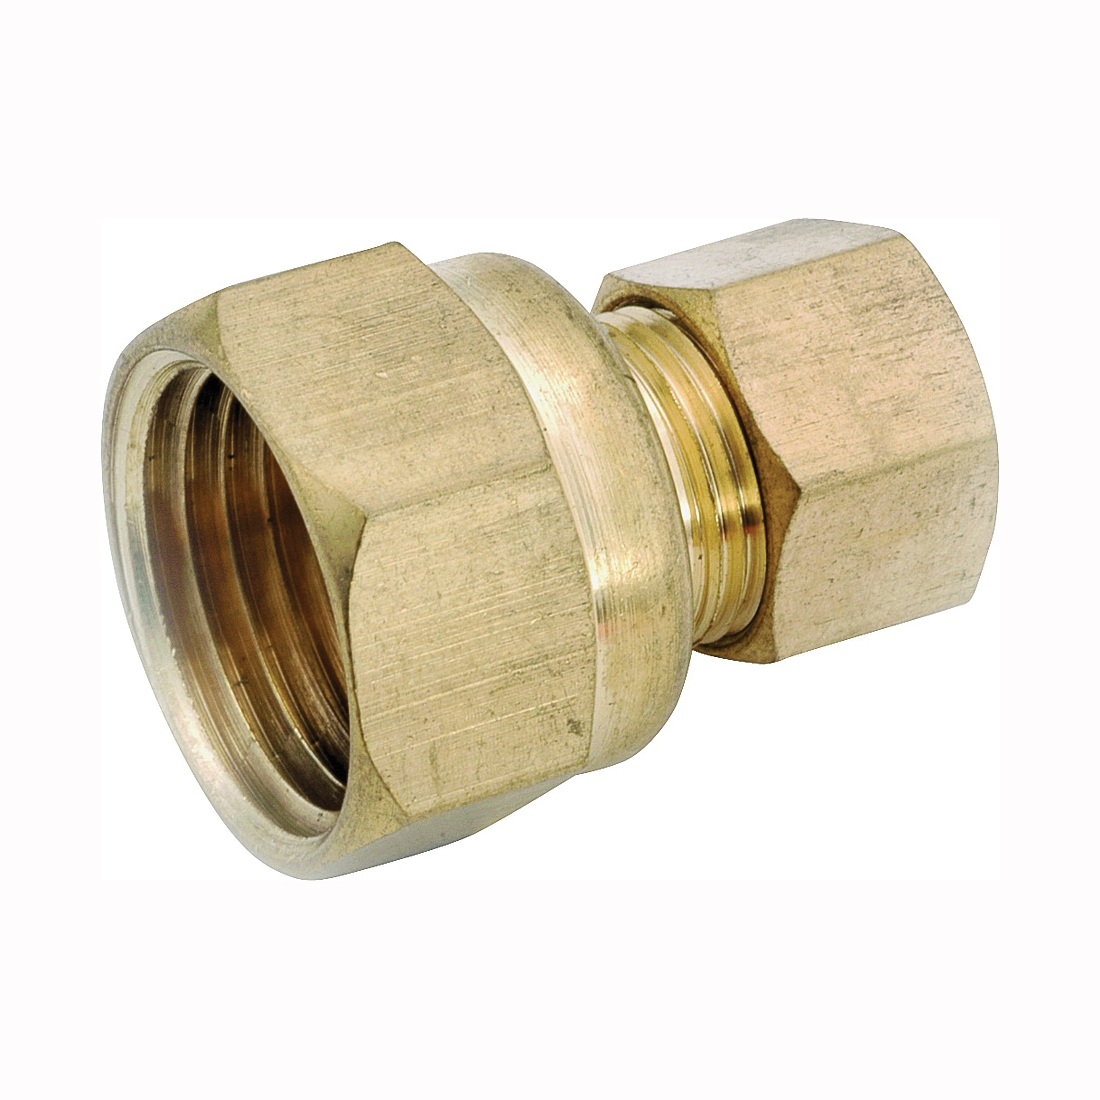 Picture of Anderson Metals 750066-0608 Tubing Coupling, 3/8 x 1/2 in, Compression x FIP, Brass